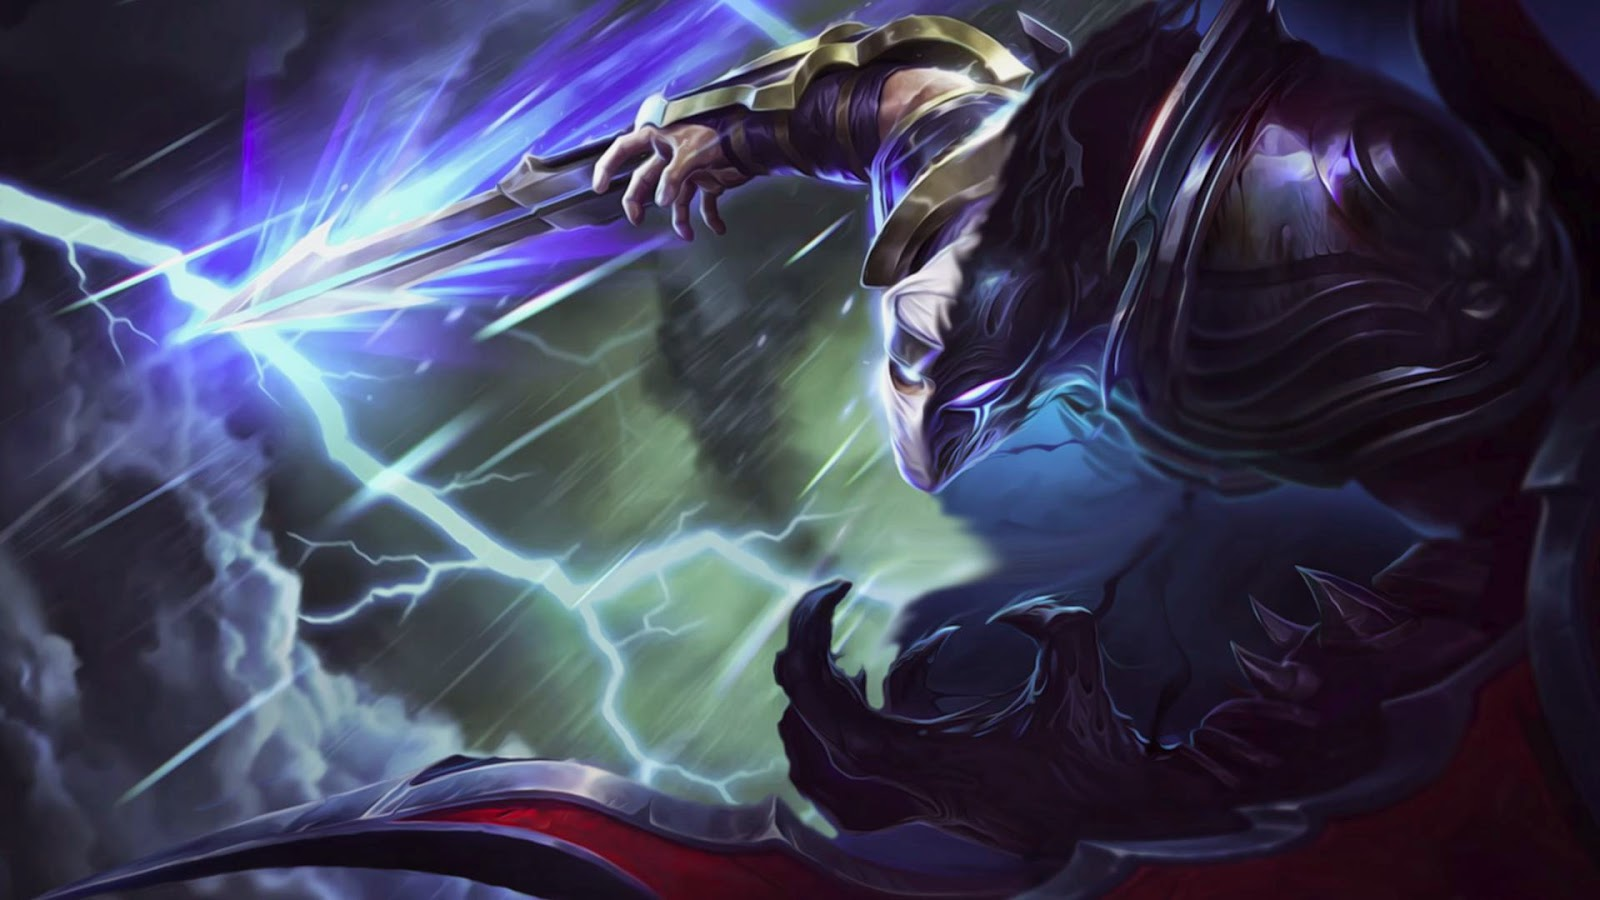 Zed Desktop Backgrounds Zed LOL Champion Wallpapers Download at 1600x900